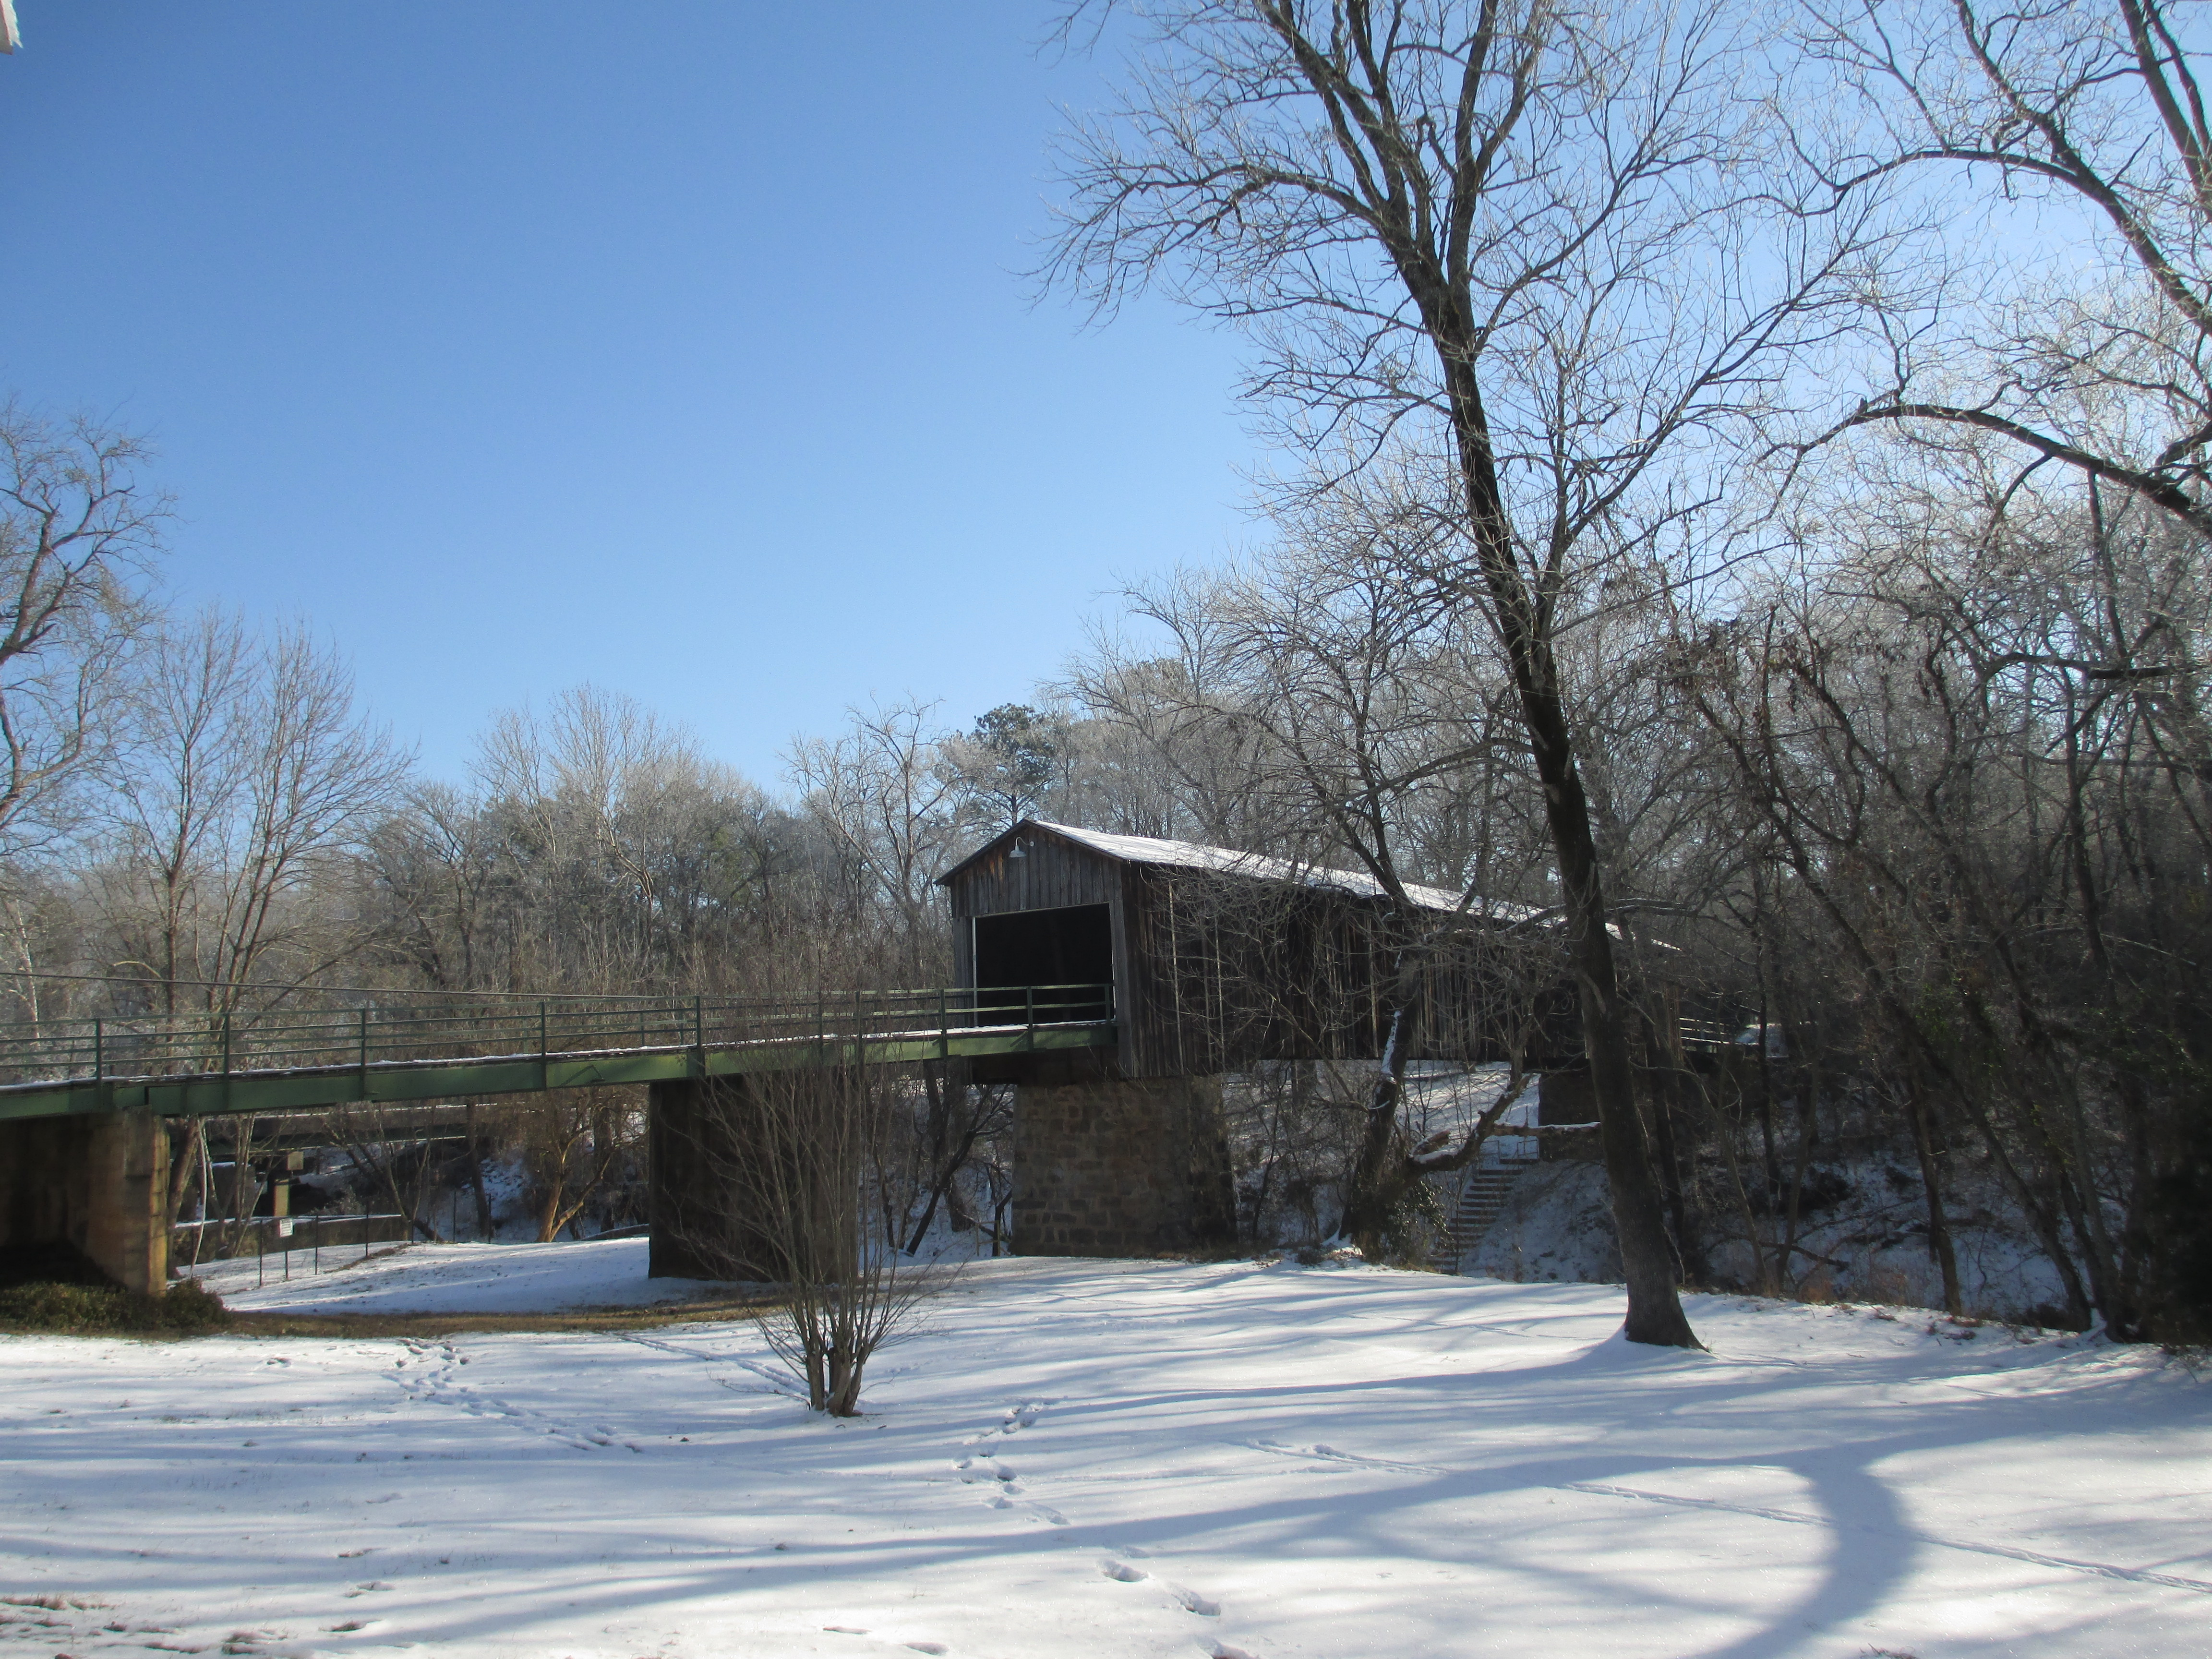 A Snowy Euharlee Covered Bridge